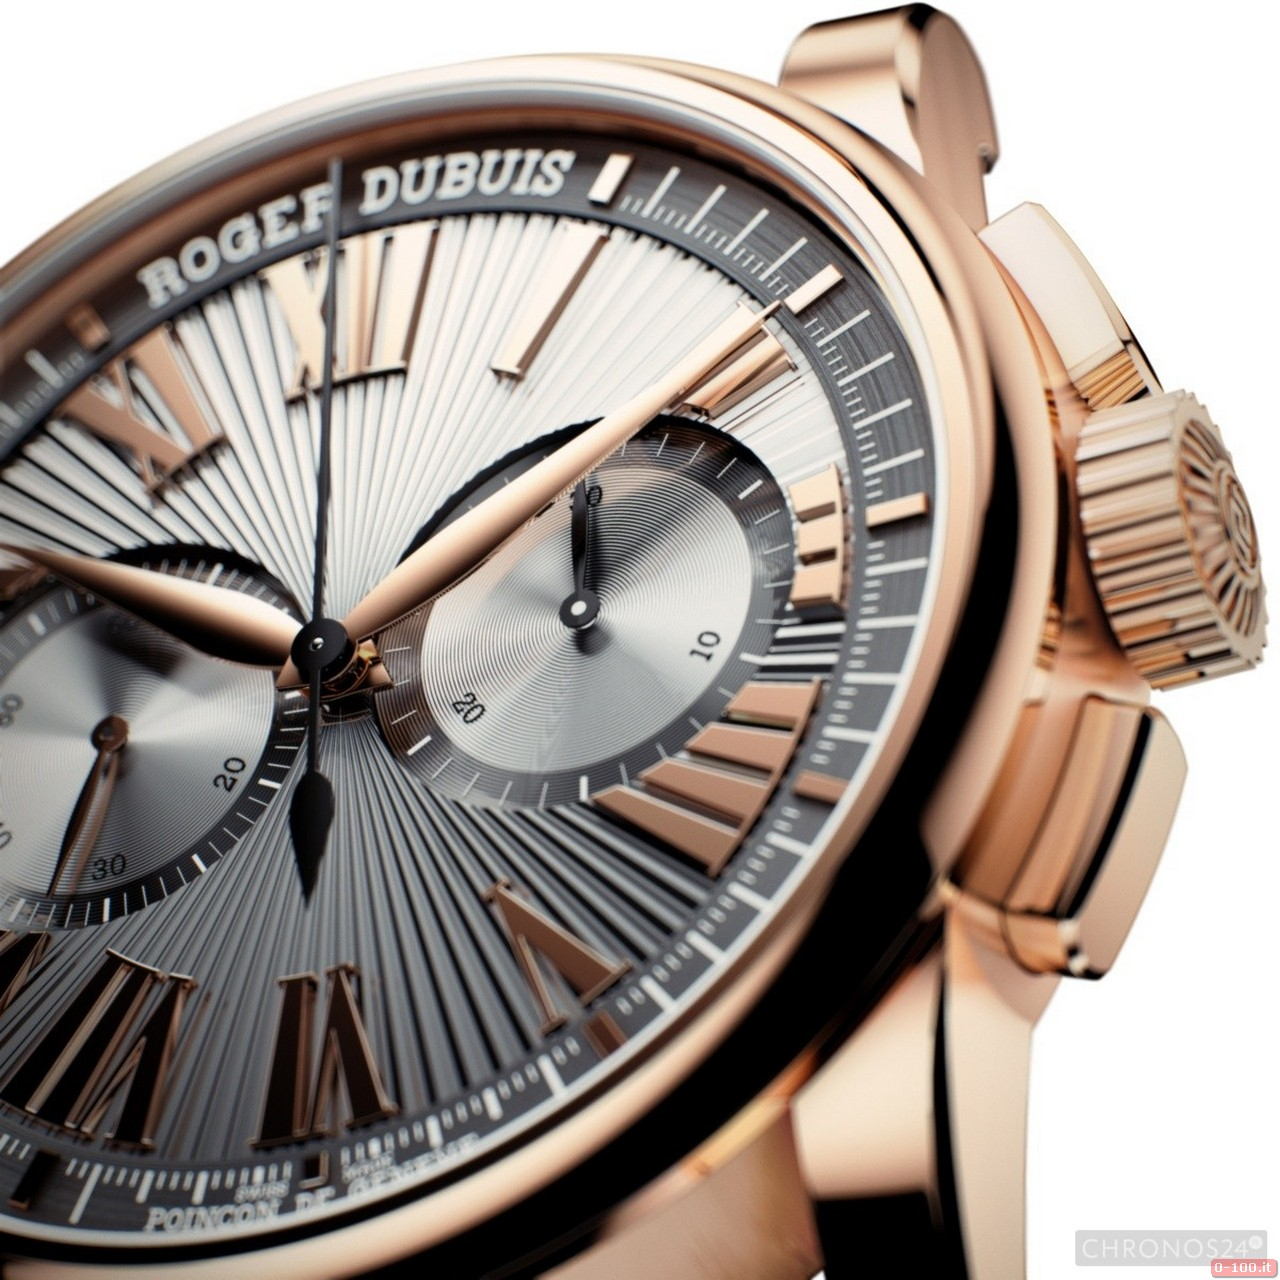 anteprima-sihh-2014-roger-dubuis-collezione-hommage-0-100_5